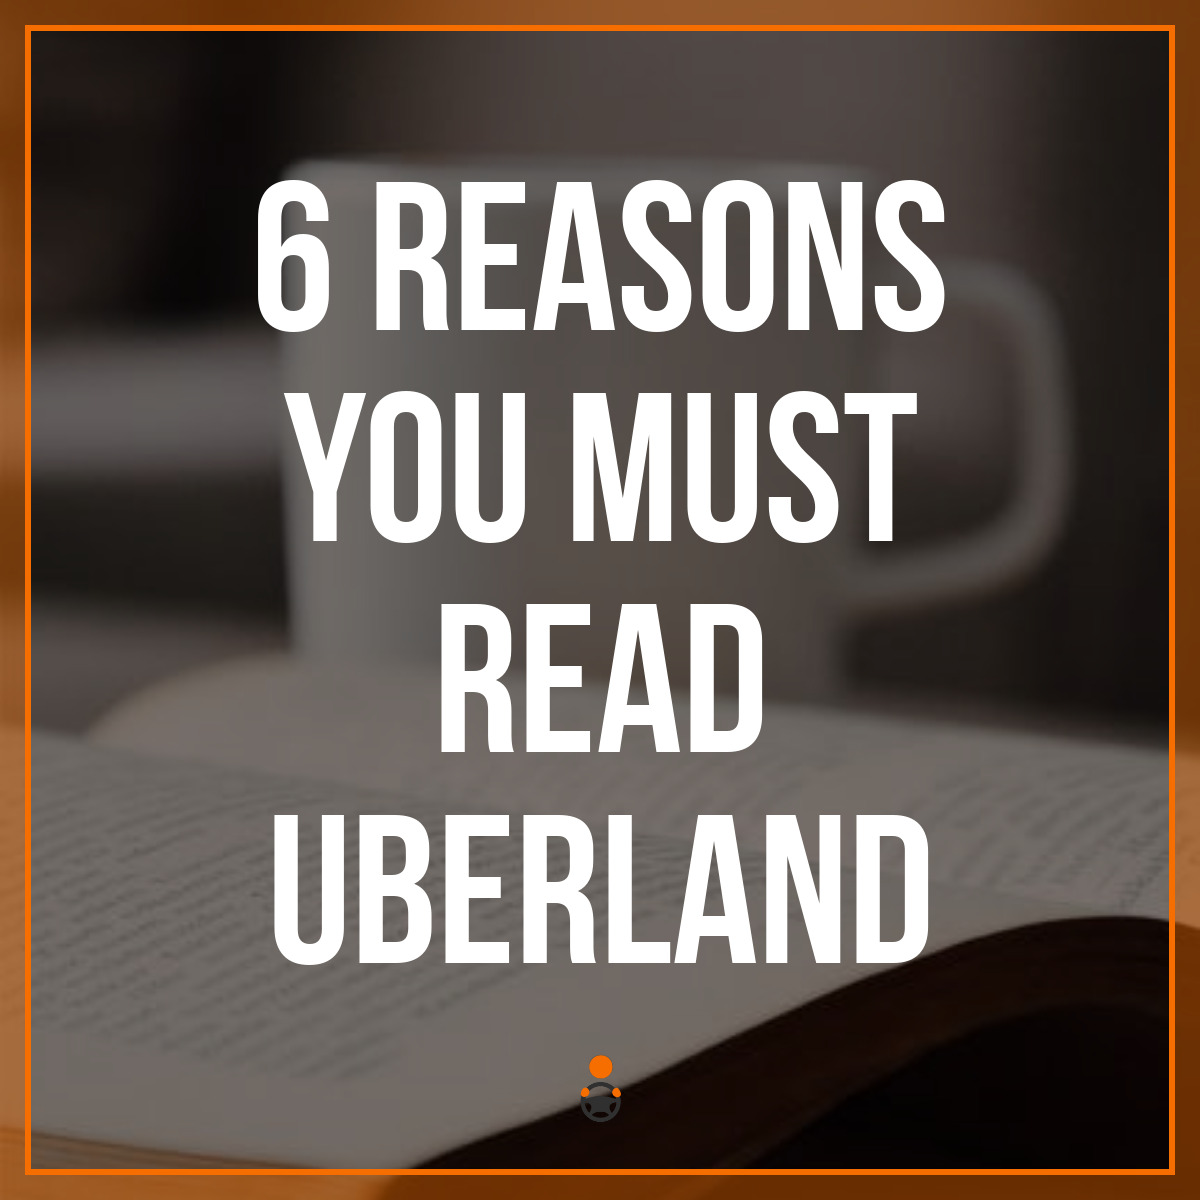 6 Reasons You Must Read Uberland